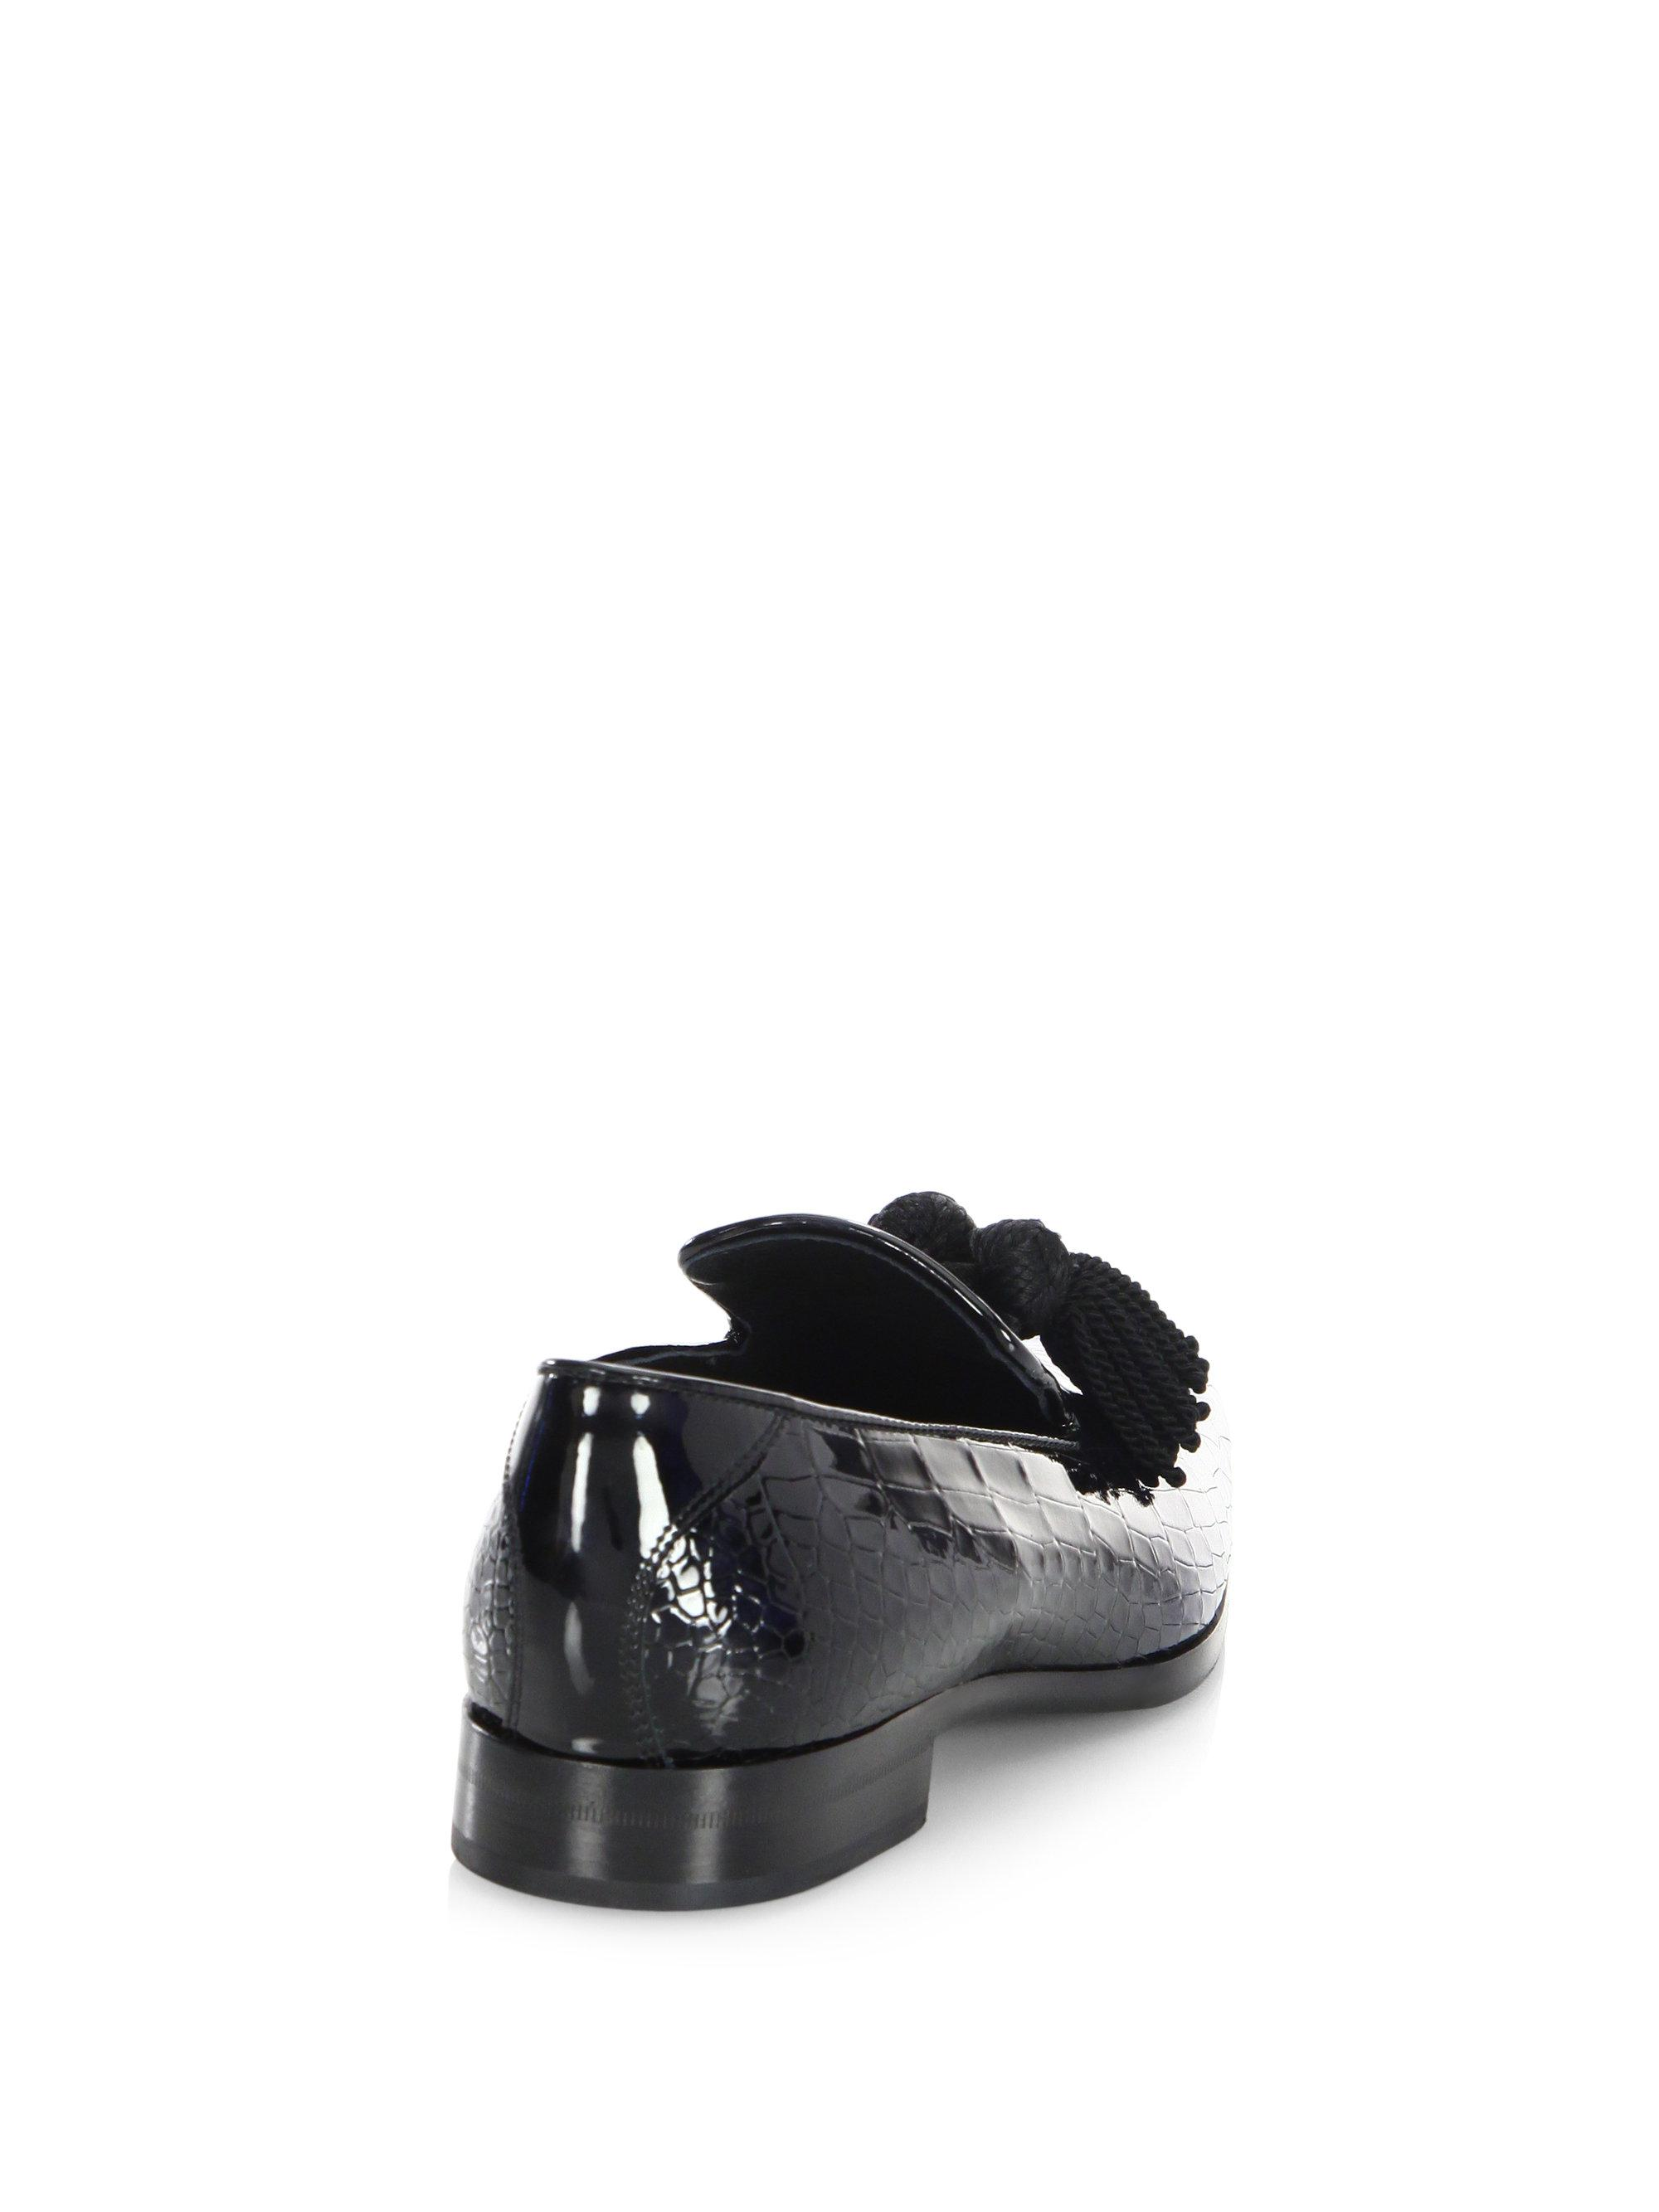 9523d6f3379 Lyst - Jimmy Choo Foxley Glitter Patent Degrade Leather Loafers in ...